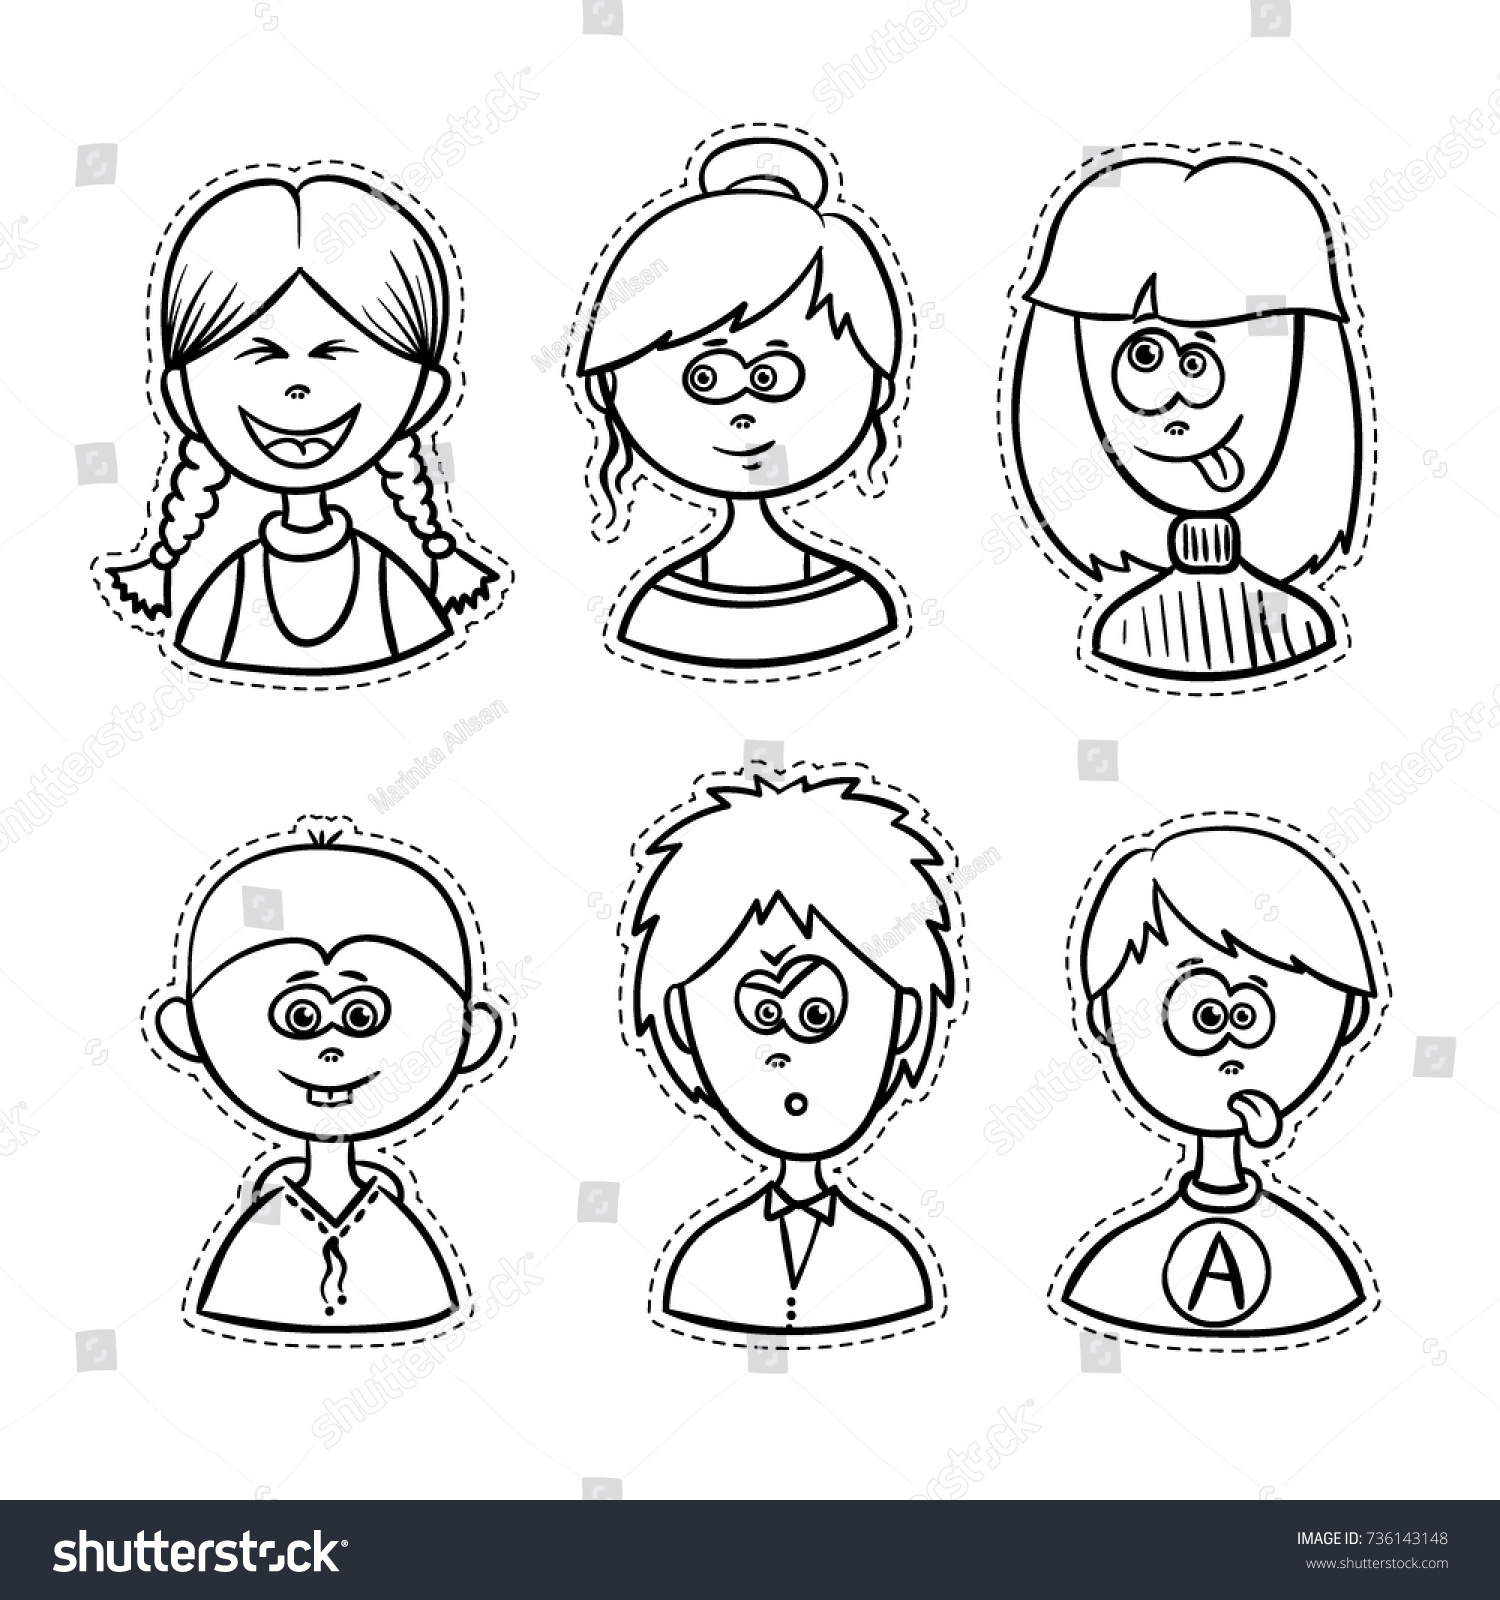 line art vector for coloring book boys and girls collection sketch style people - Coloring Books For Boys